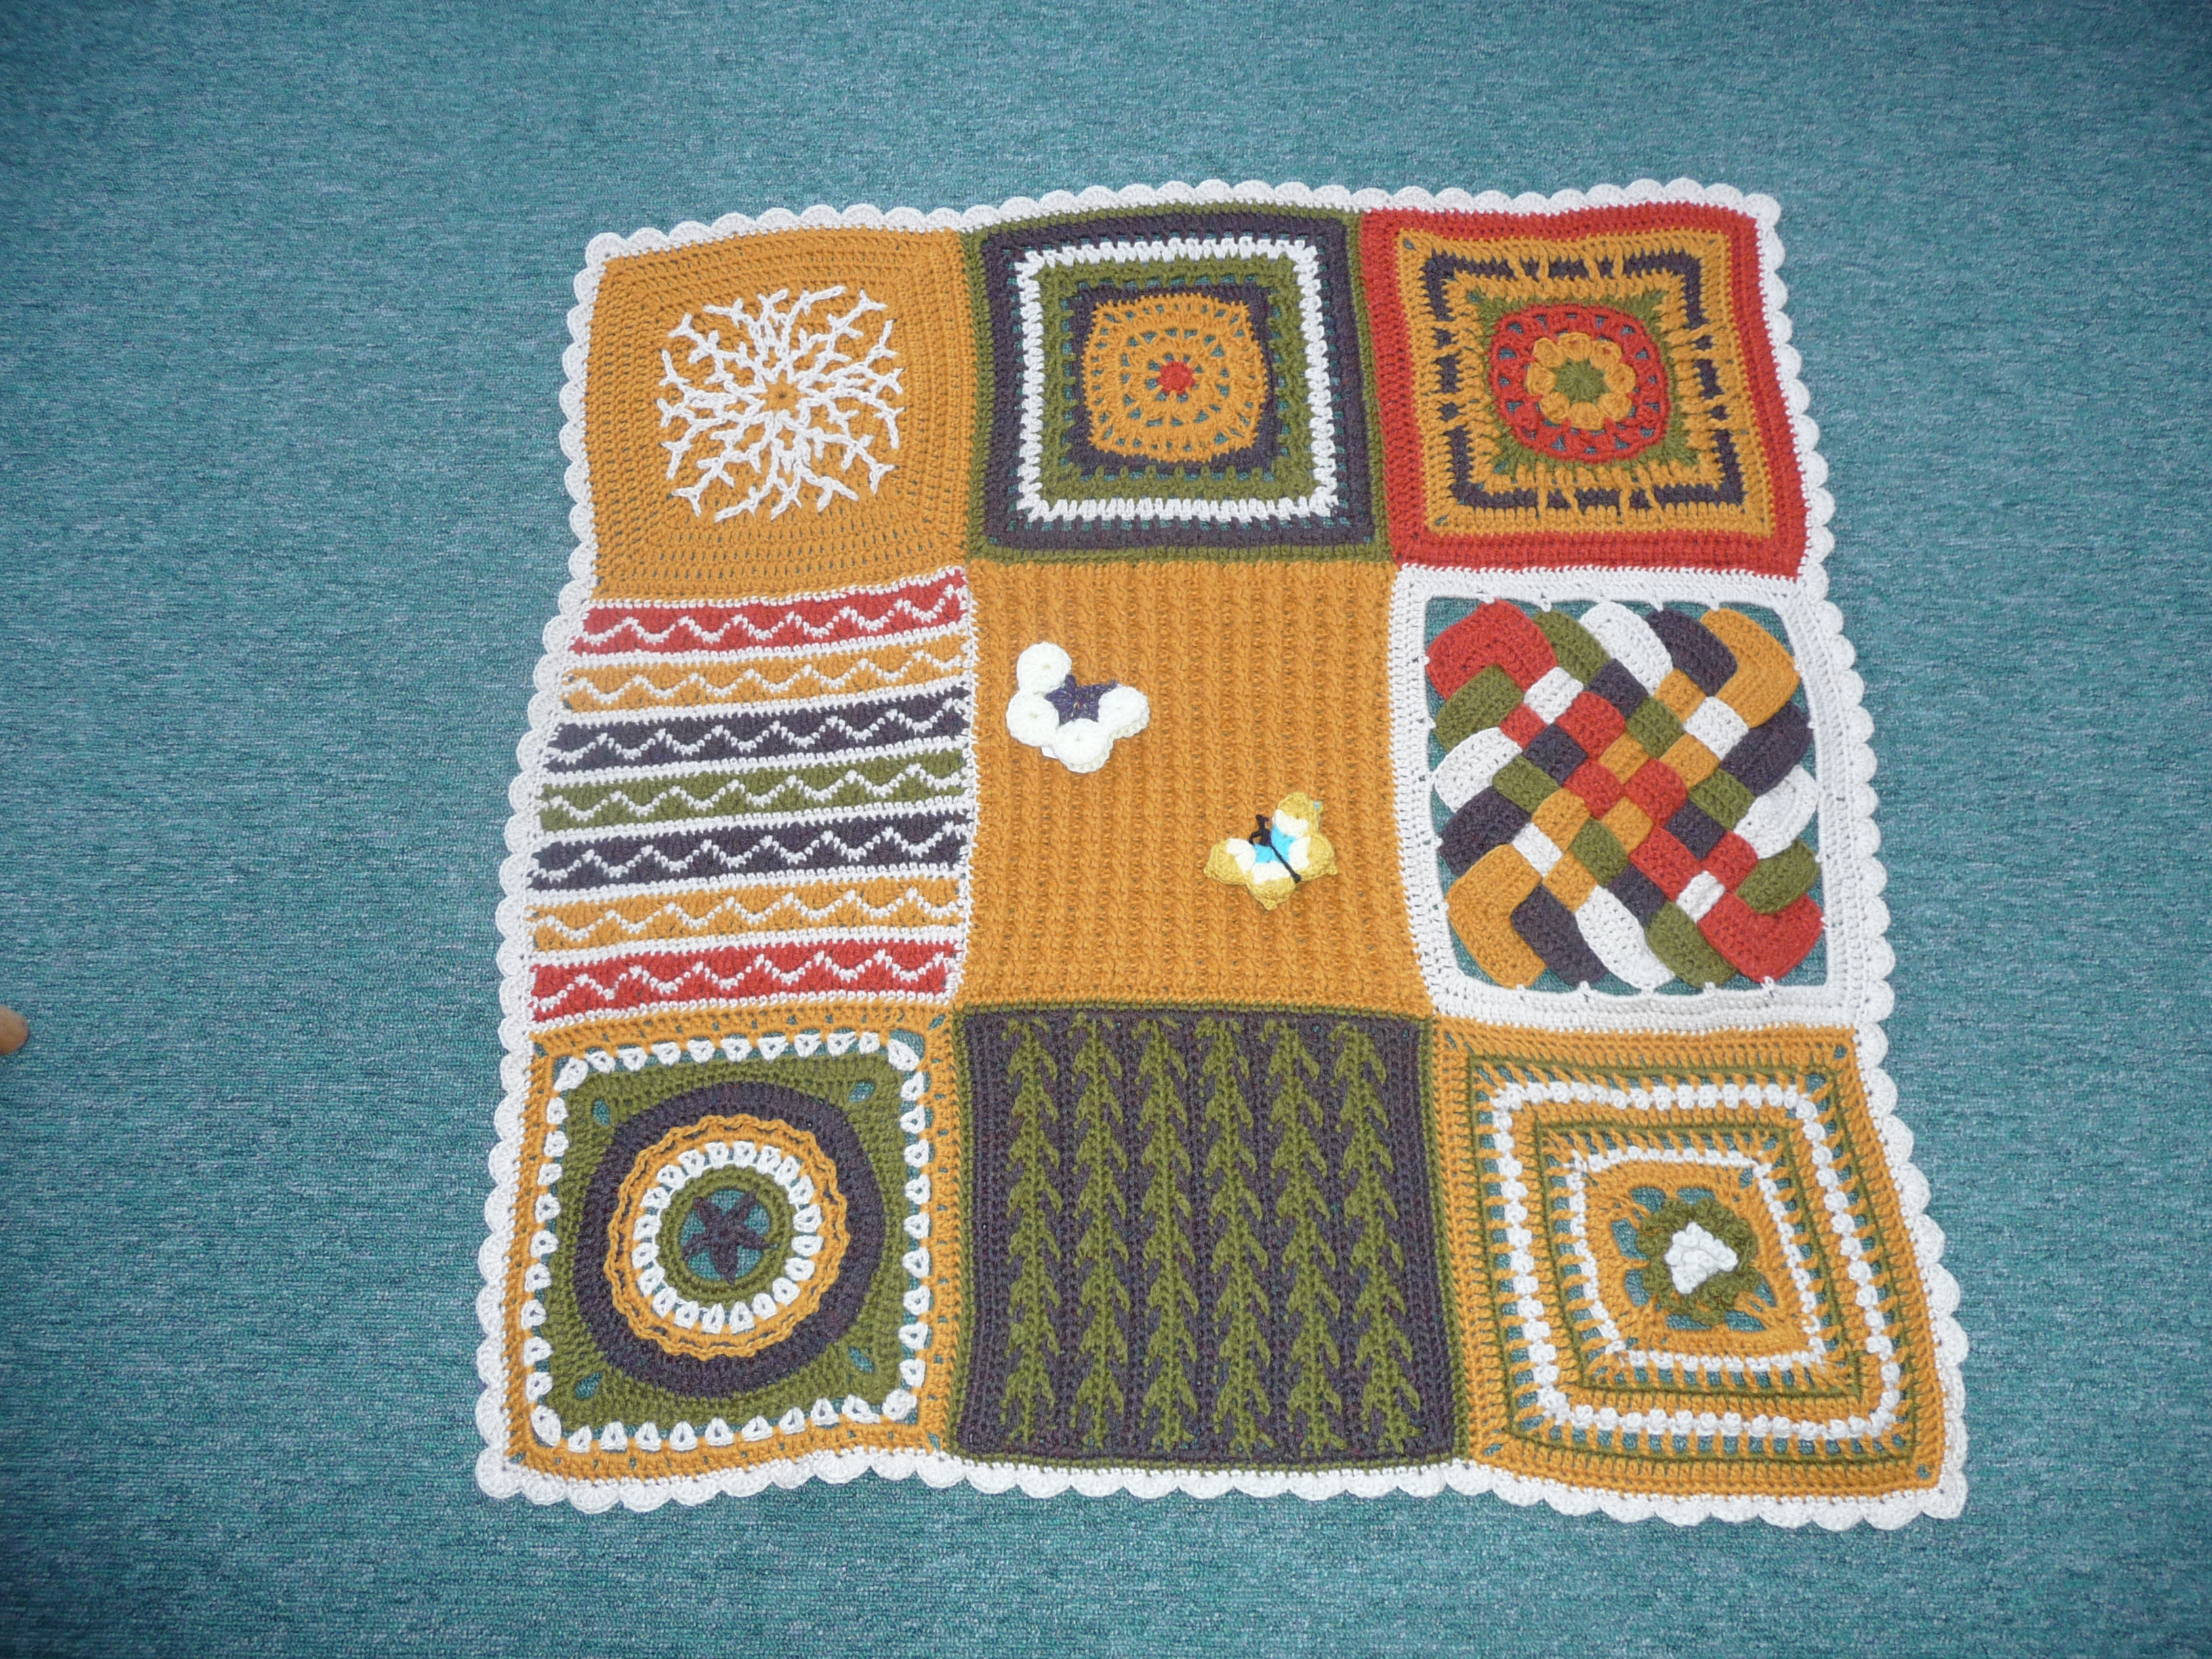 Squares from the Chain Reaction Afghan which is free from Interweave Crochet.